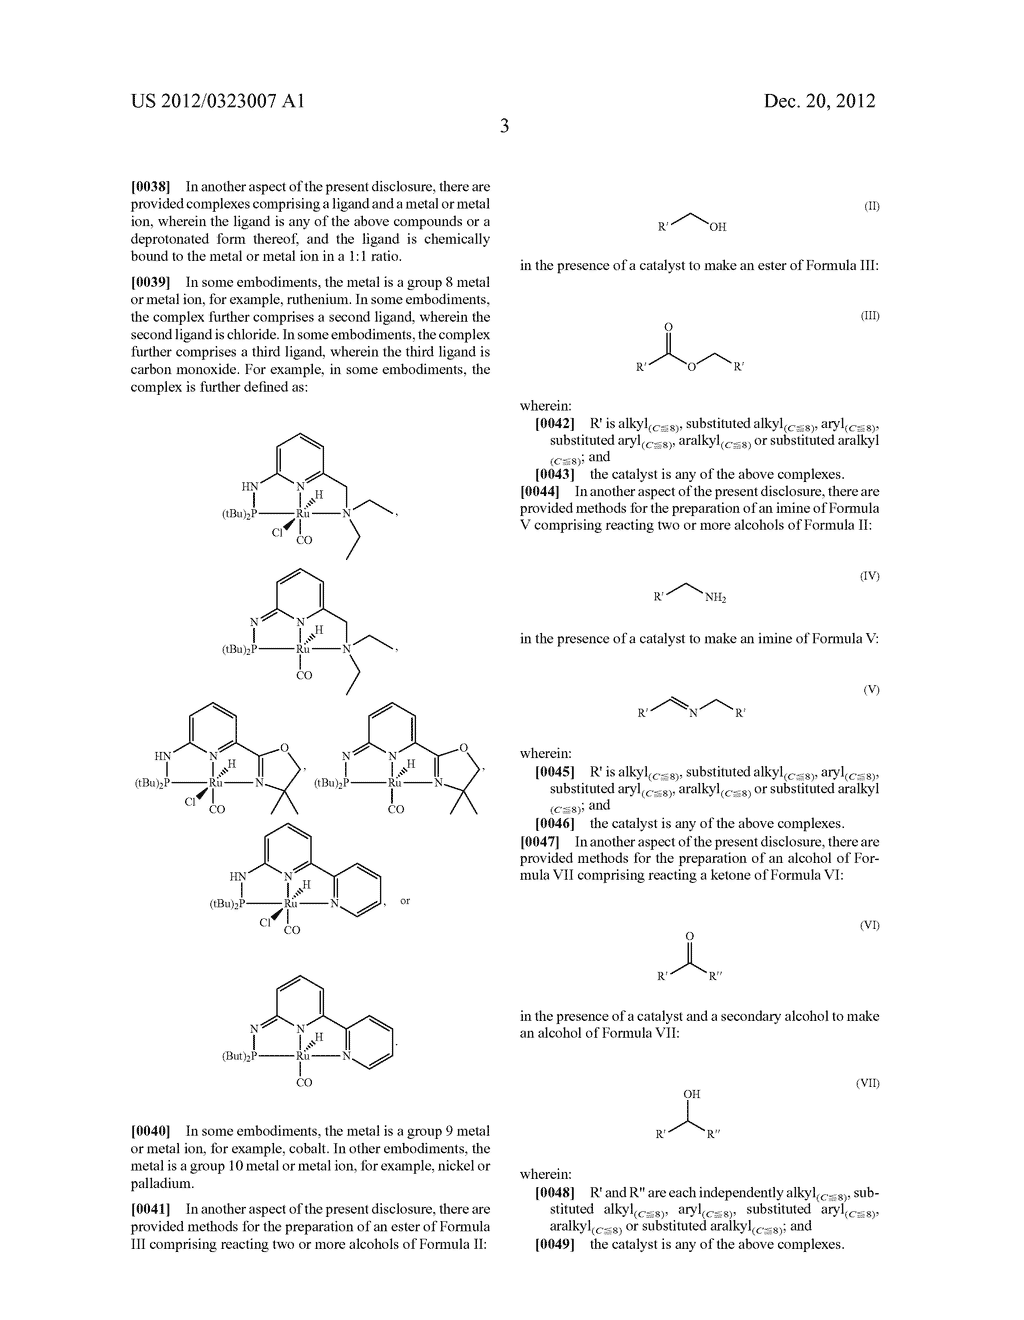 PHOSPHO-AMINO PINCER-TYPE LIGANDS AND CATALYTIC METAL COMPLEXES THEREOF - diagram, schematic, and image 11